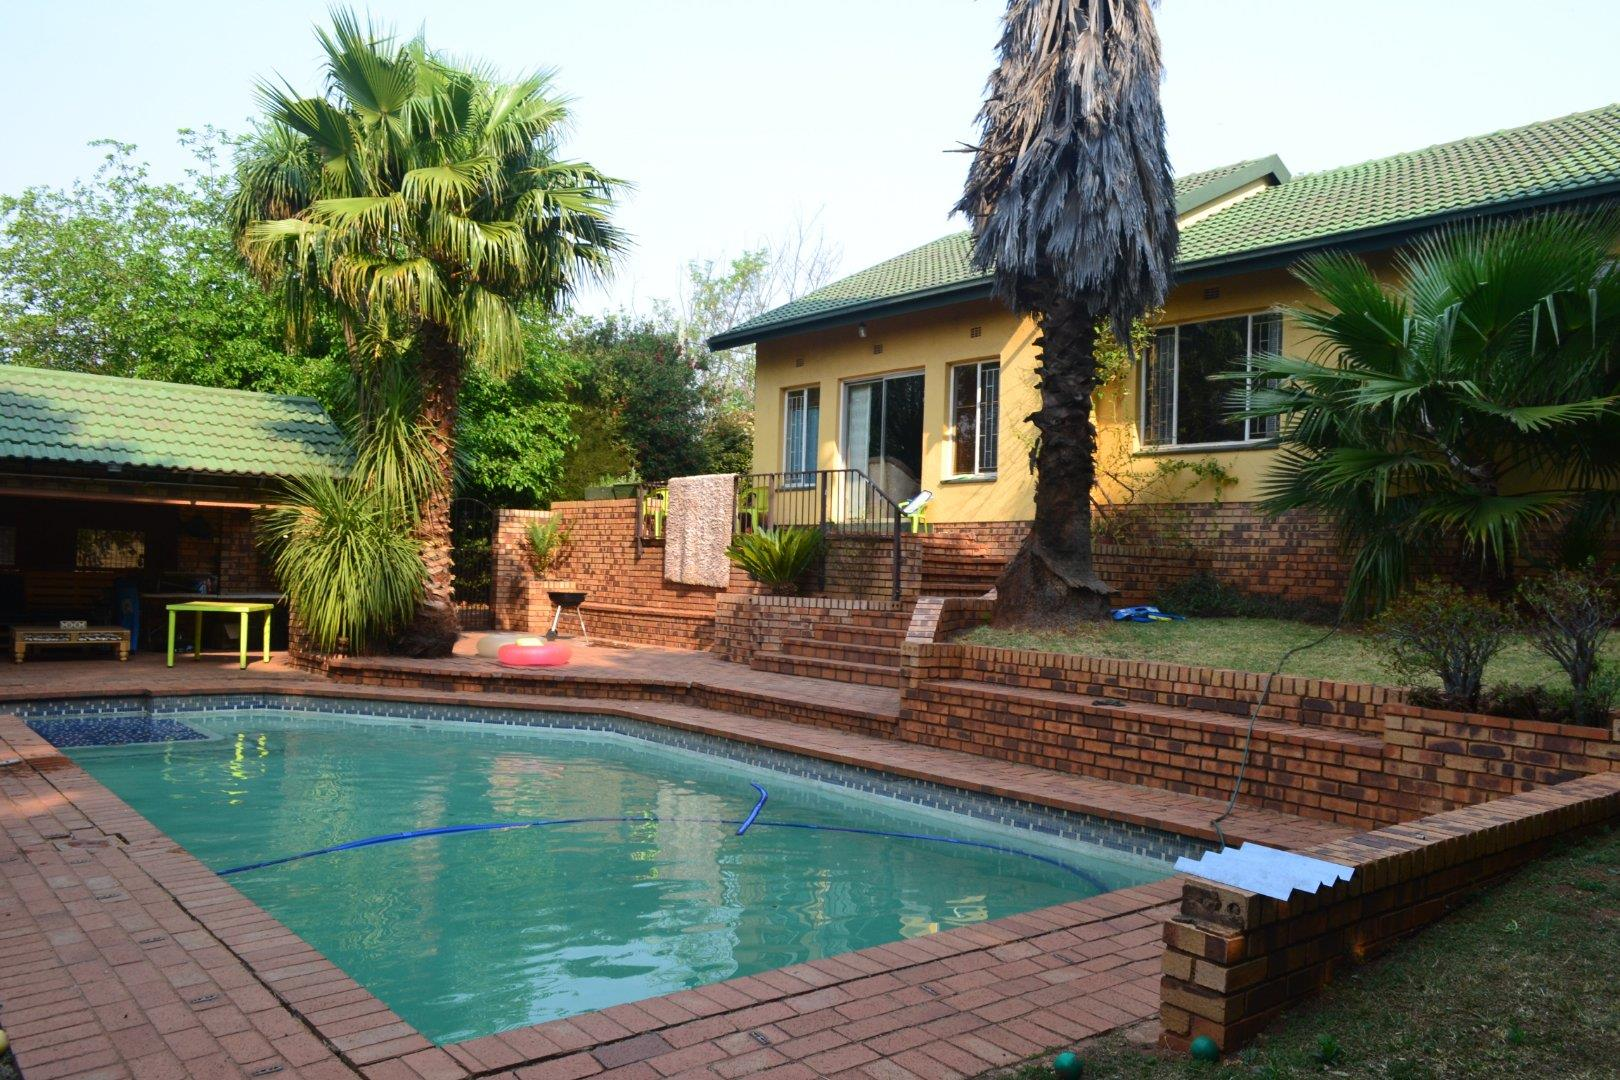 3 Bedroom House for Sale in Roodekrans, Roodepoort - Gauteng